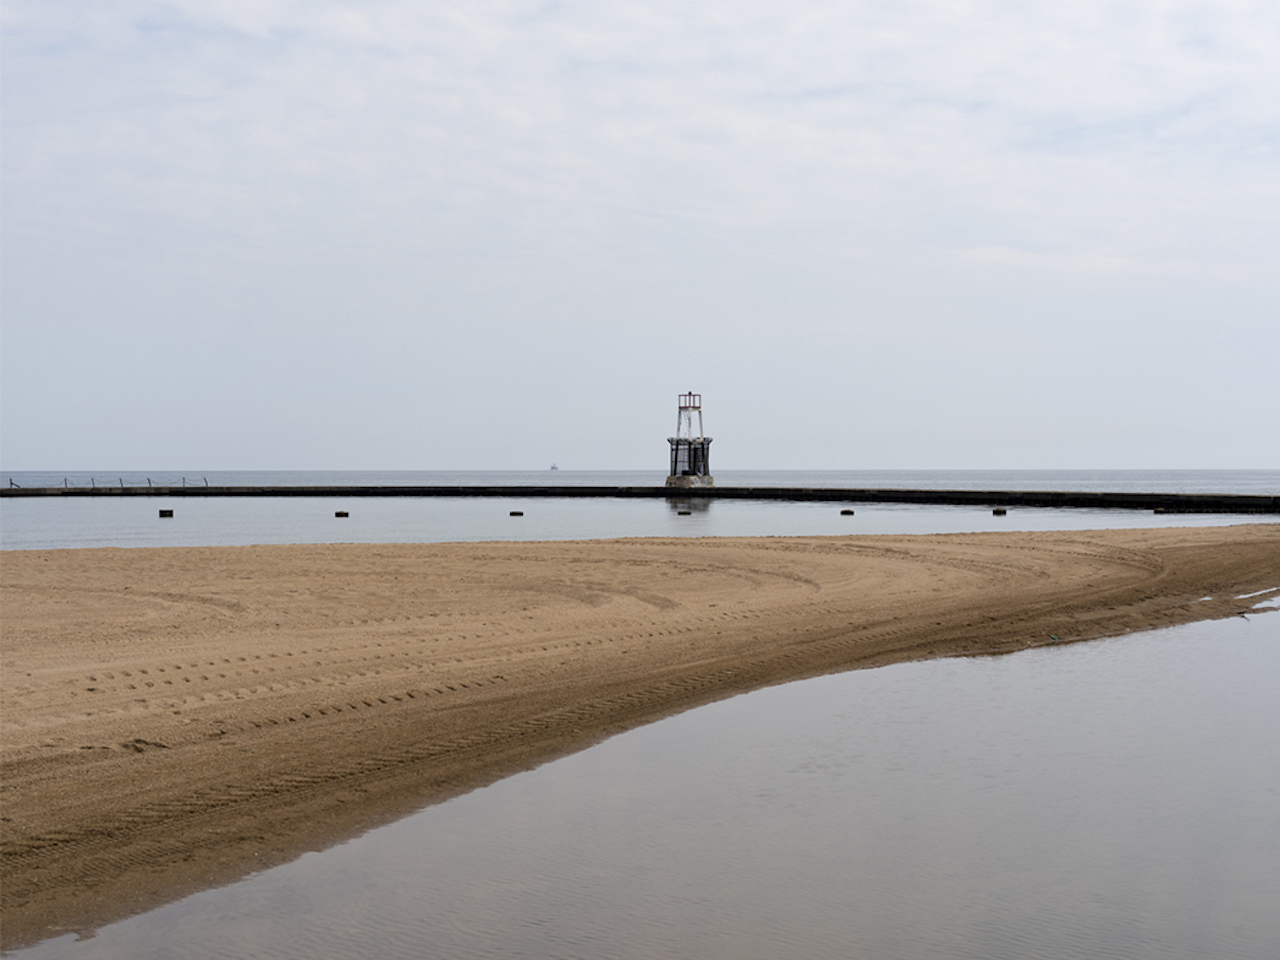 a light tower sits out on a scorpion tail break wall that protects the man made beaches of Lake Michigan from the waters off shore, from The Shore series by Lincoln Schatz